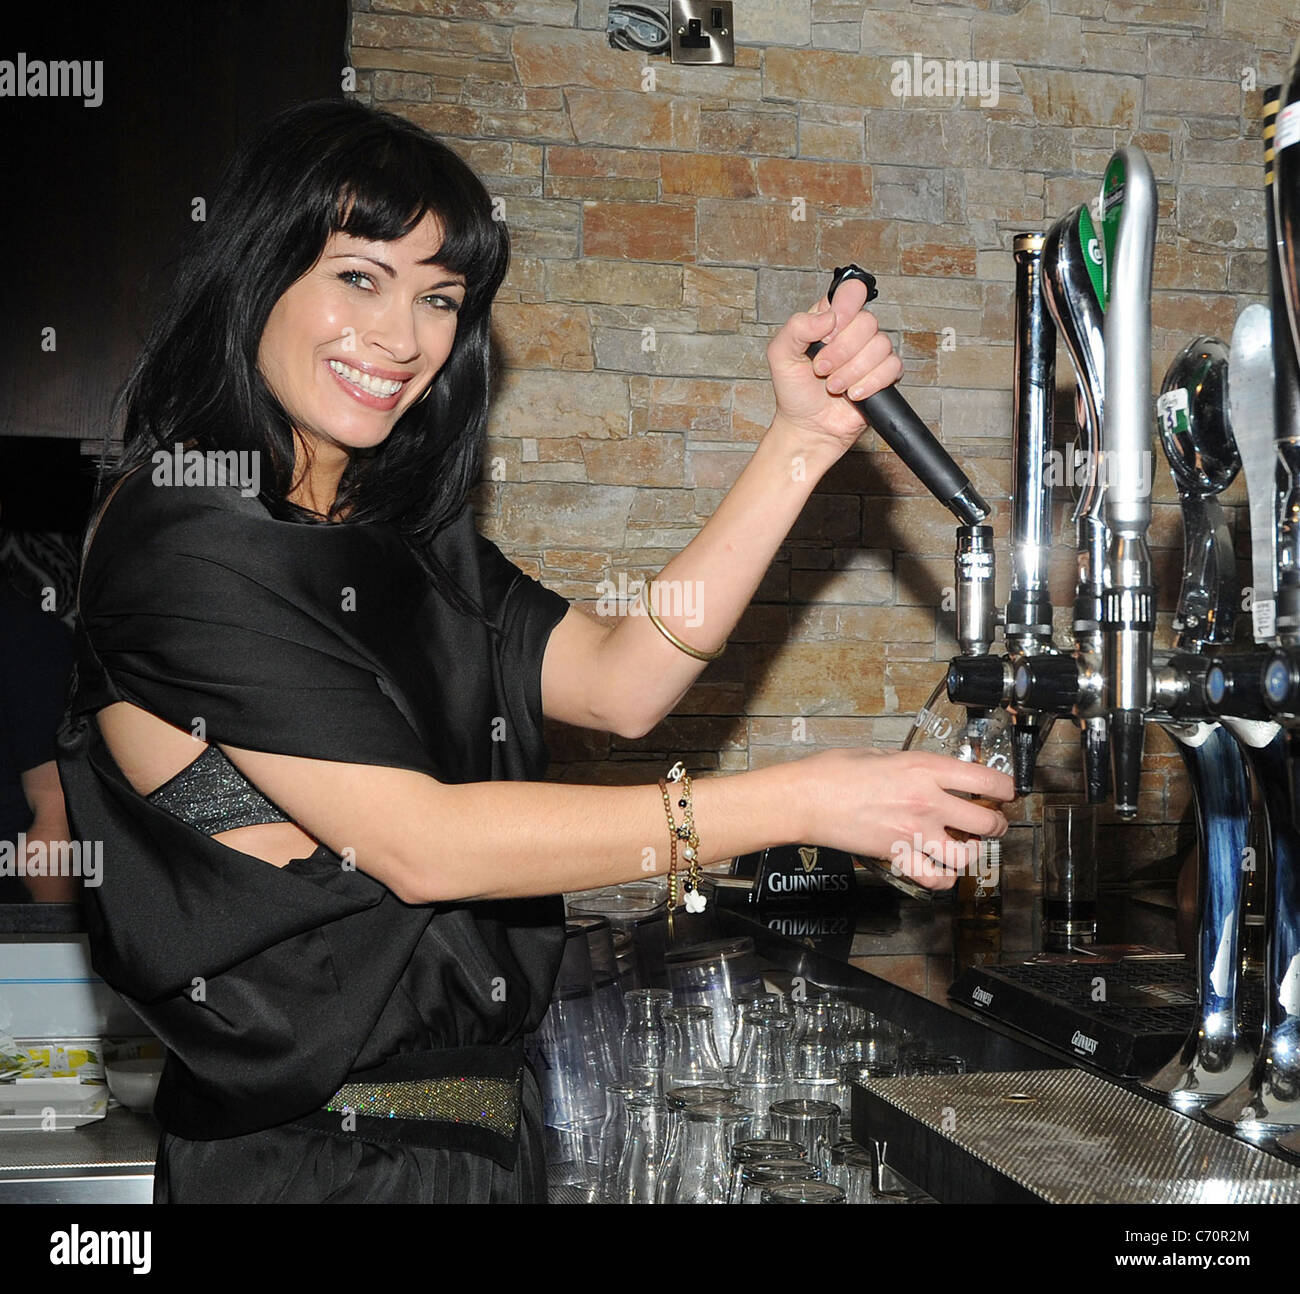 alison-king-pulling-a-pint-of-guinness-at-a-club-in-maynooth-dublin-C70R2M.jpg